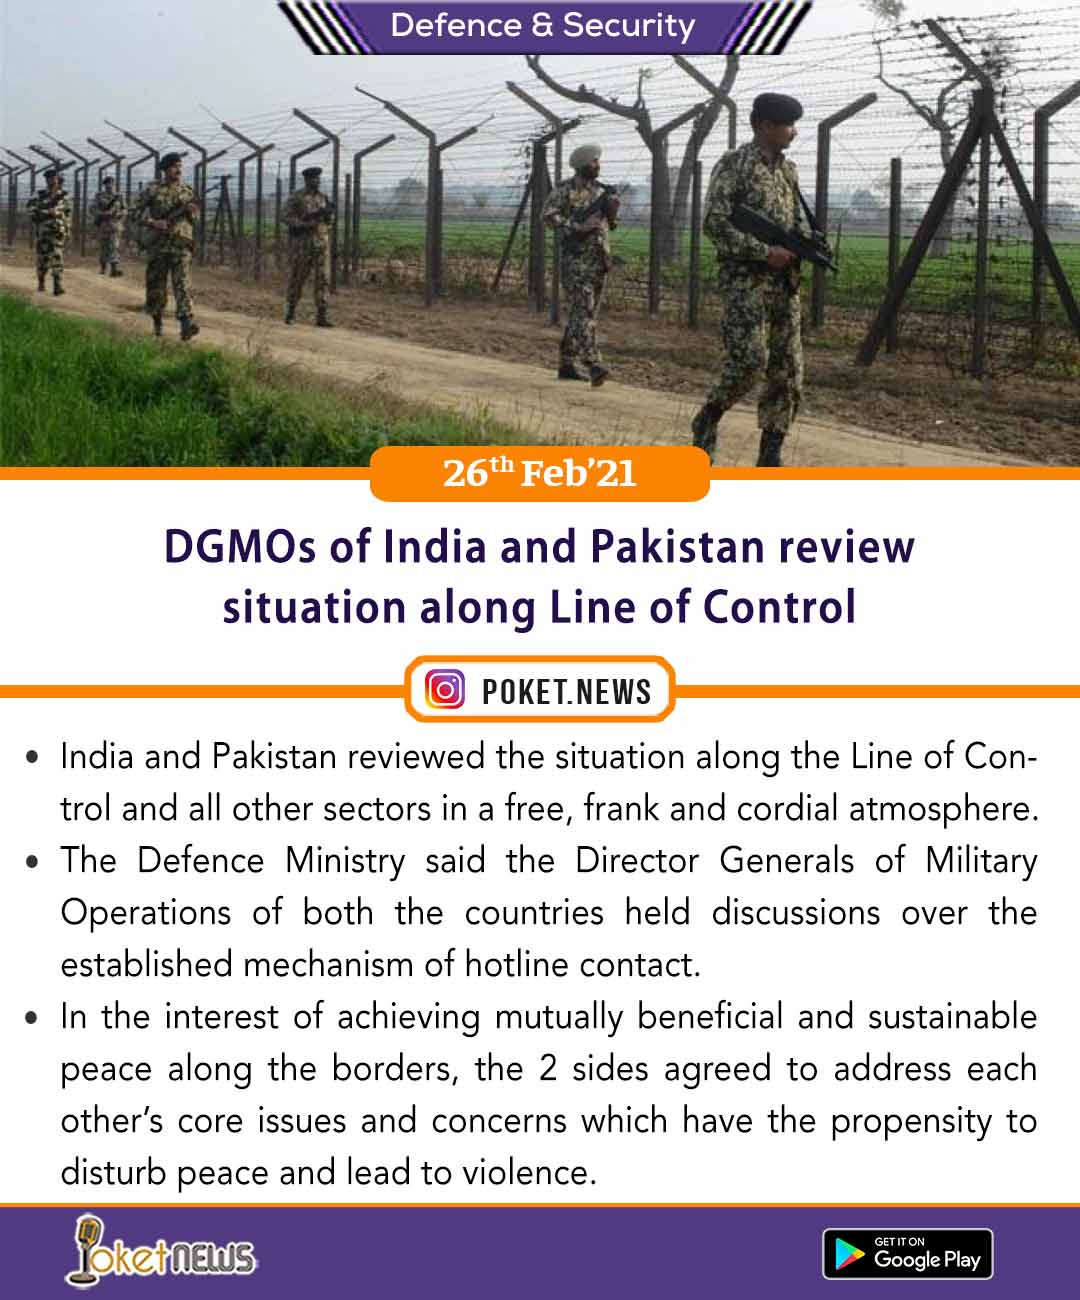 DGMOs of India and Pakistan review situation along Line of Control